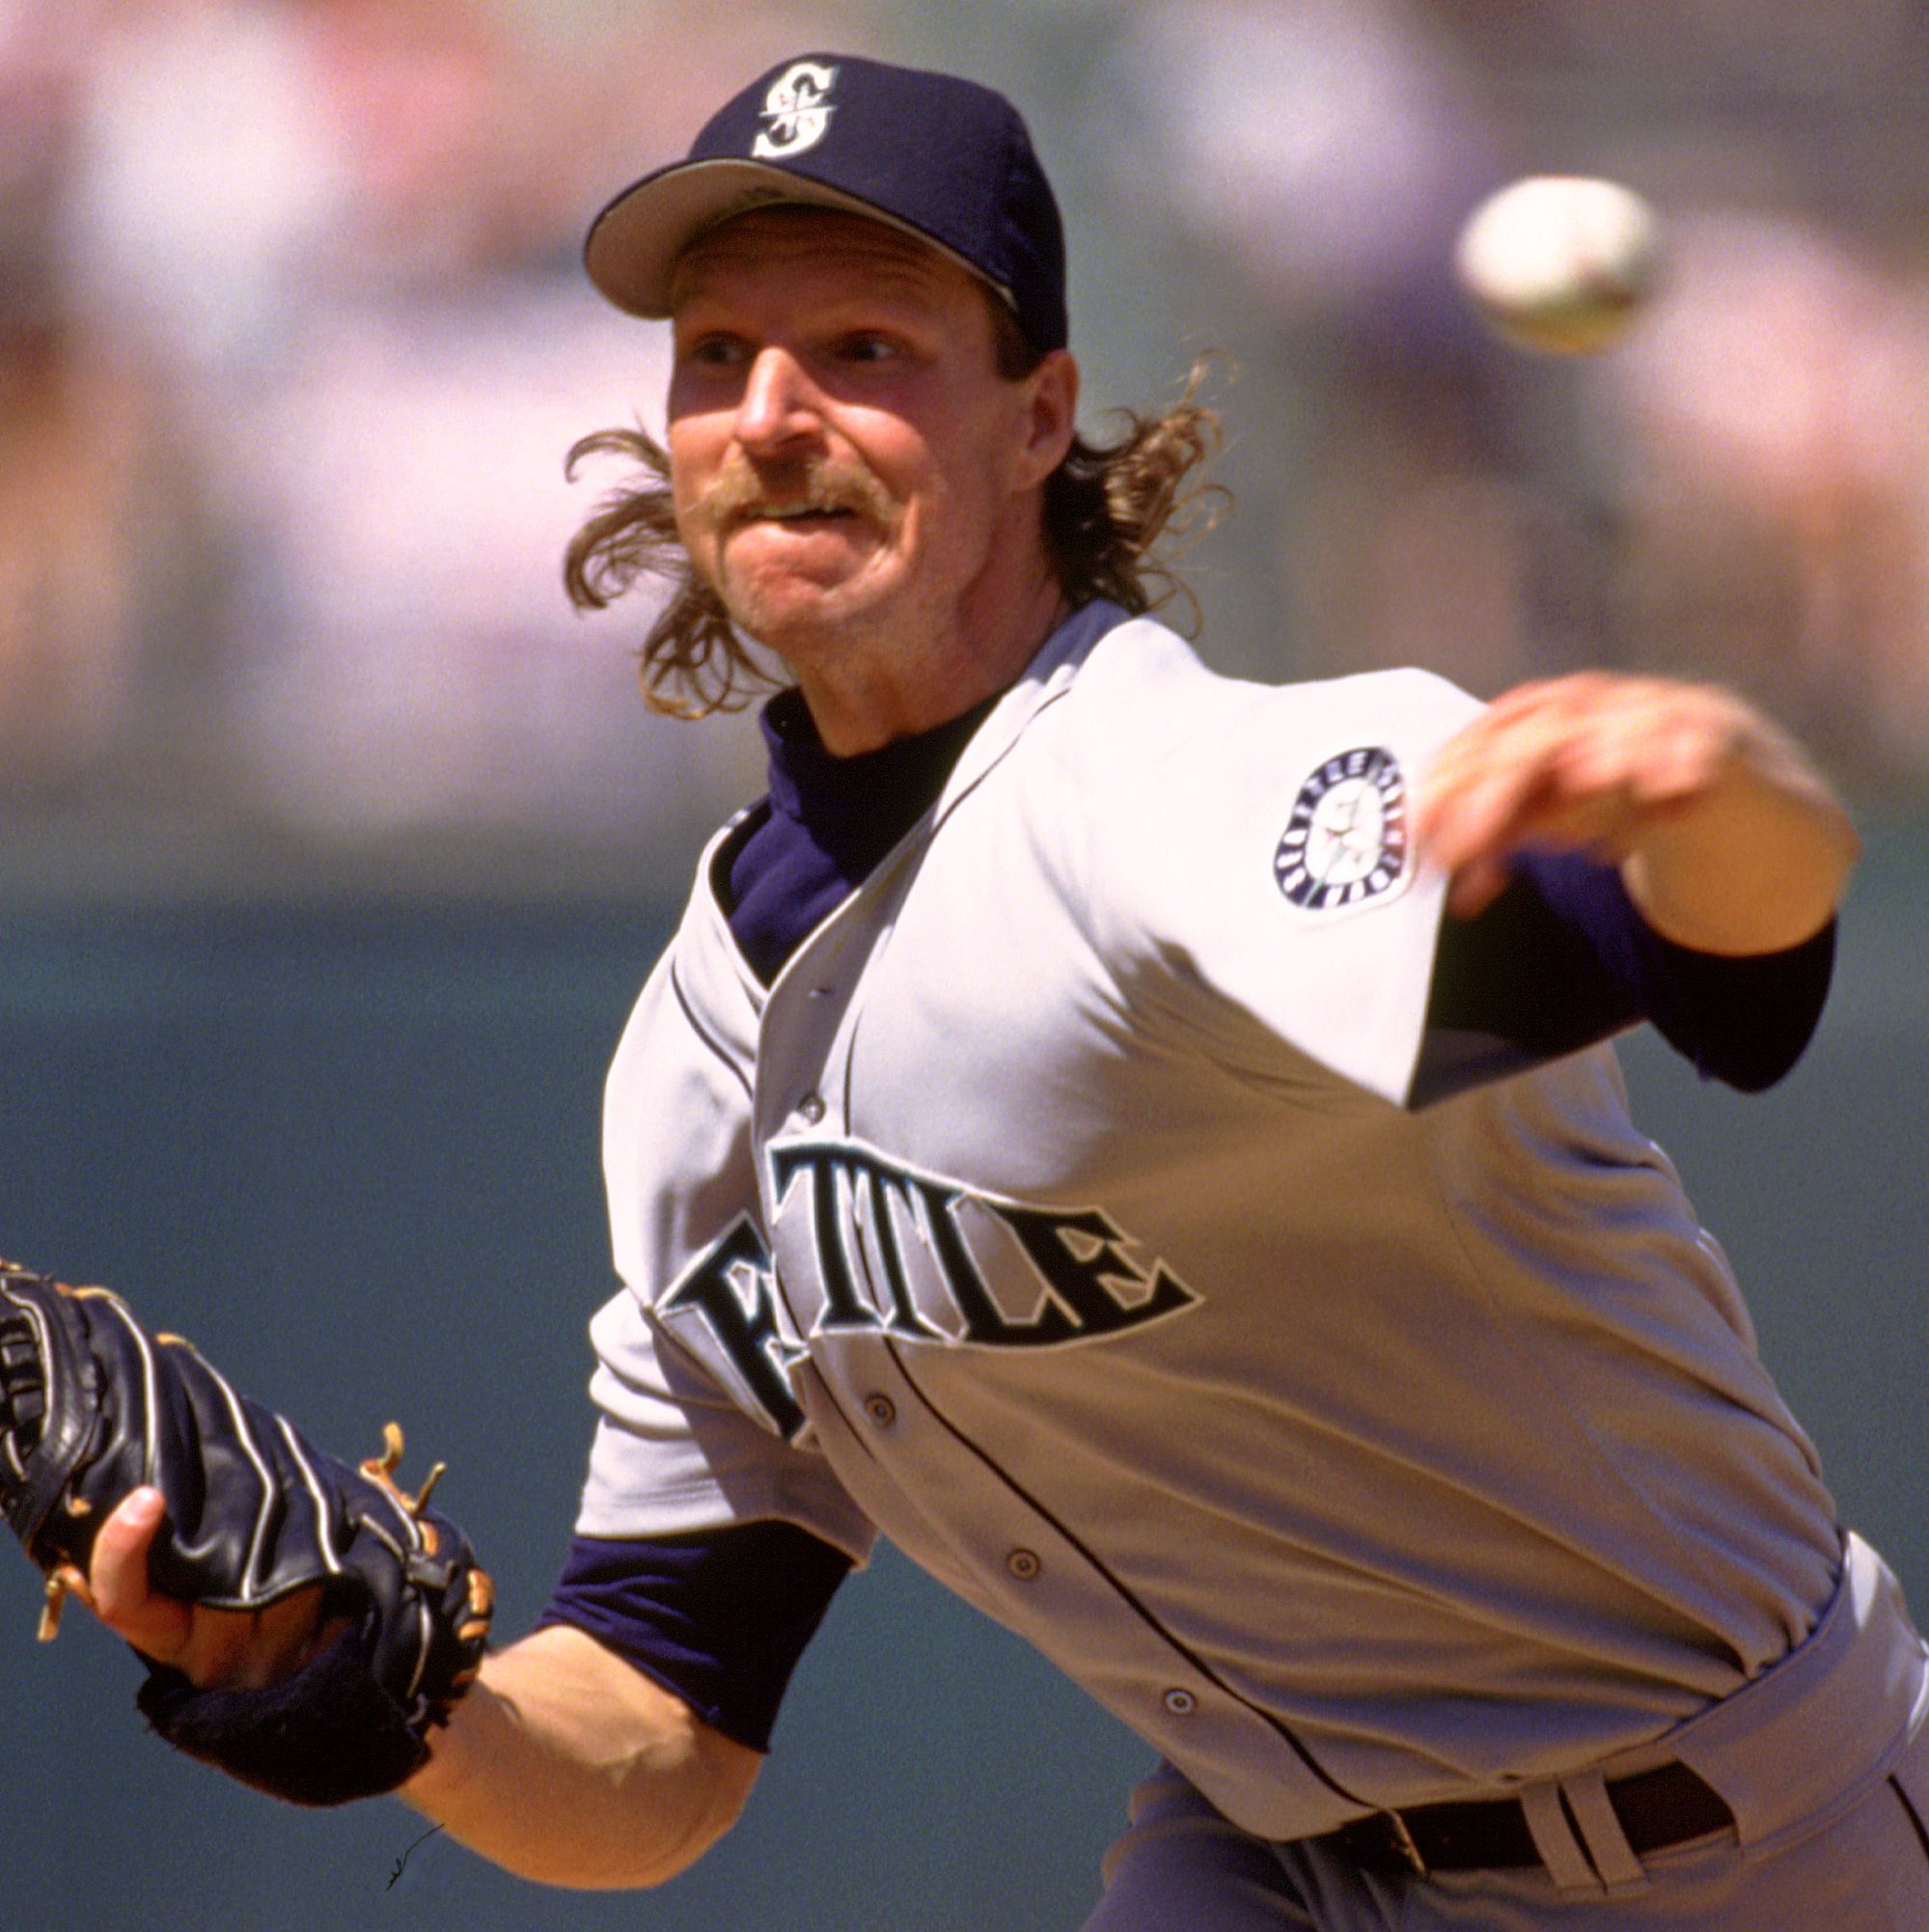 1993: Randy Johnson What is it about famous baseball players and their equally famous stubble? Johnson's mustache never went away, whether he was off the field or throwing record-making strikeouts.